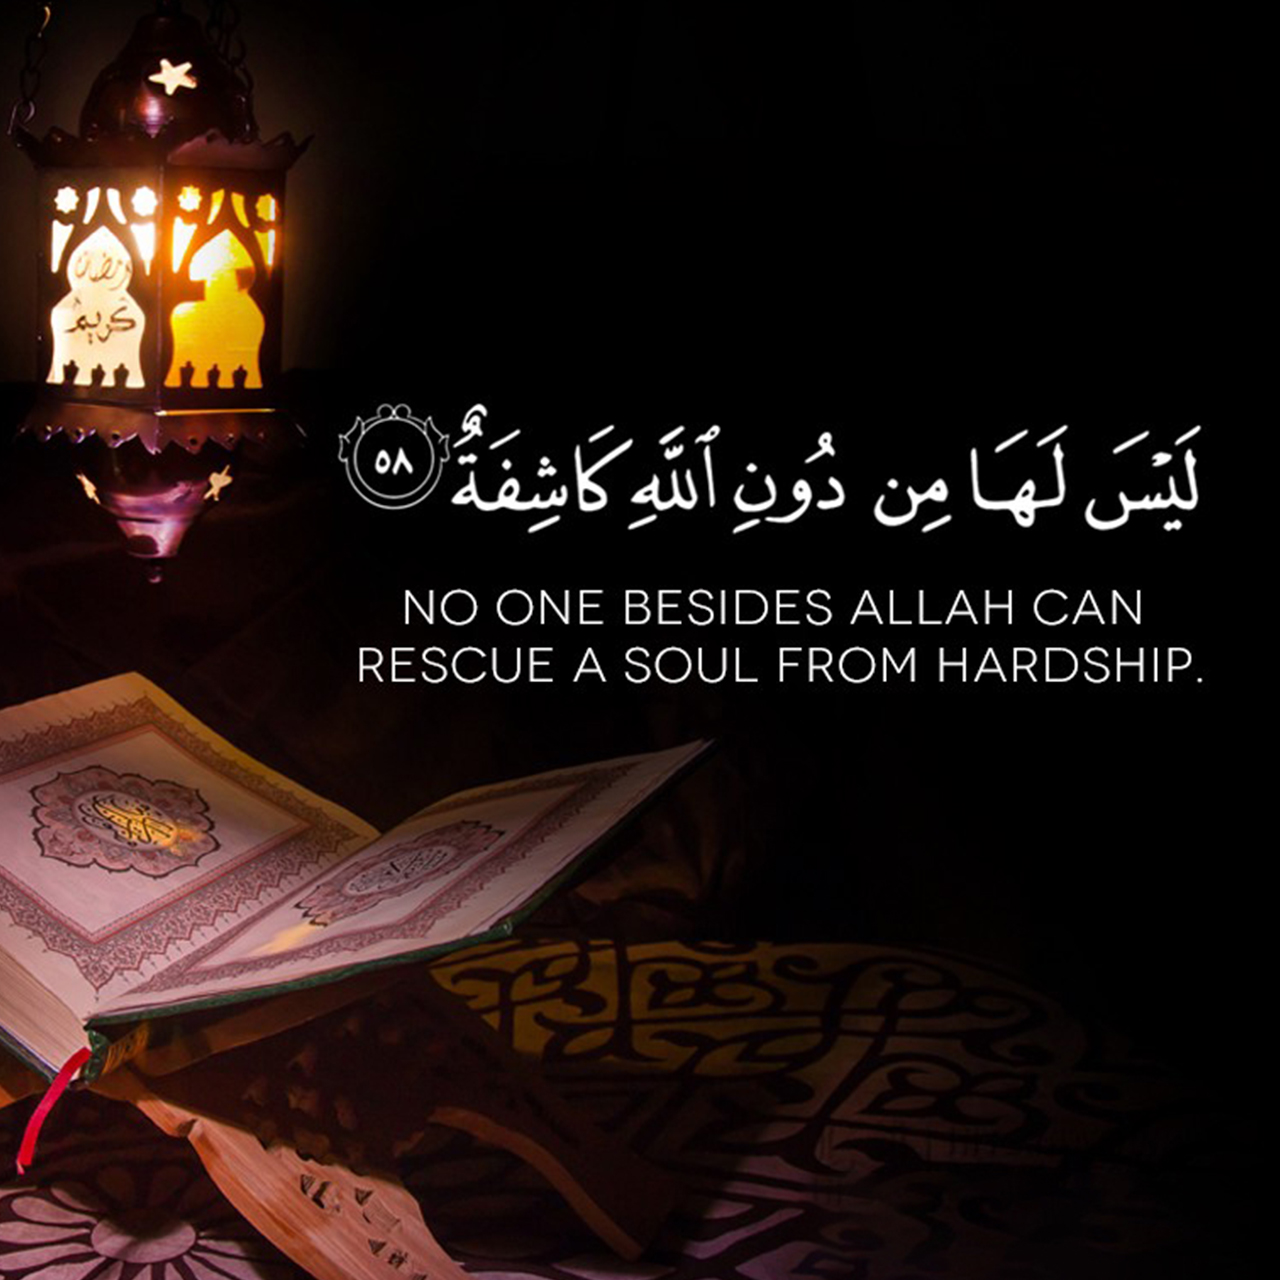 On one besides Allah can rescue a soul from hardship